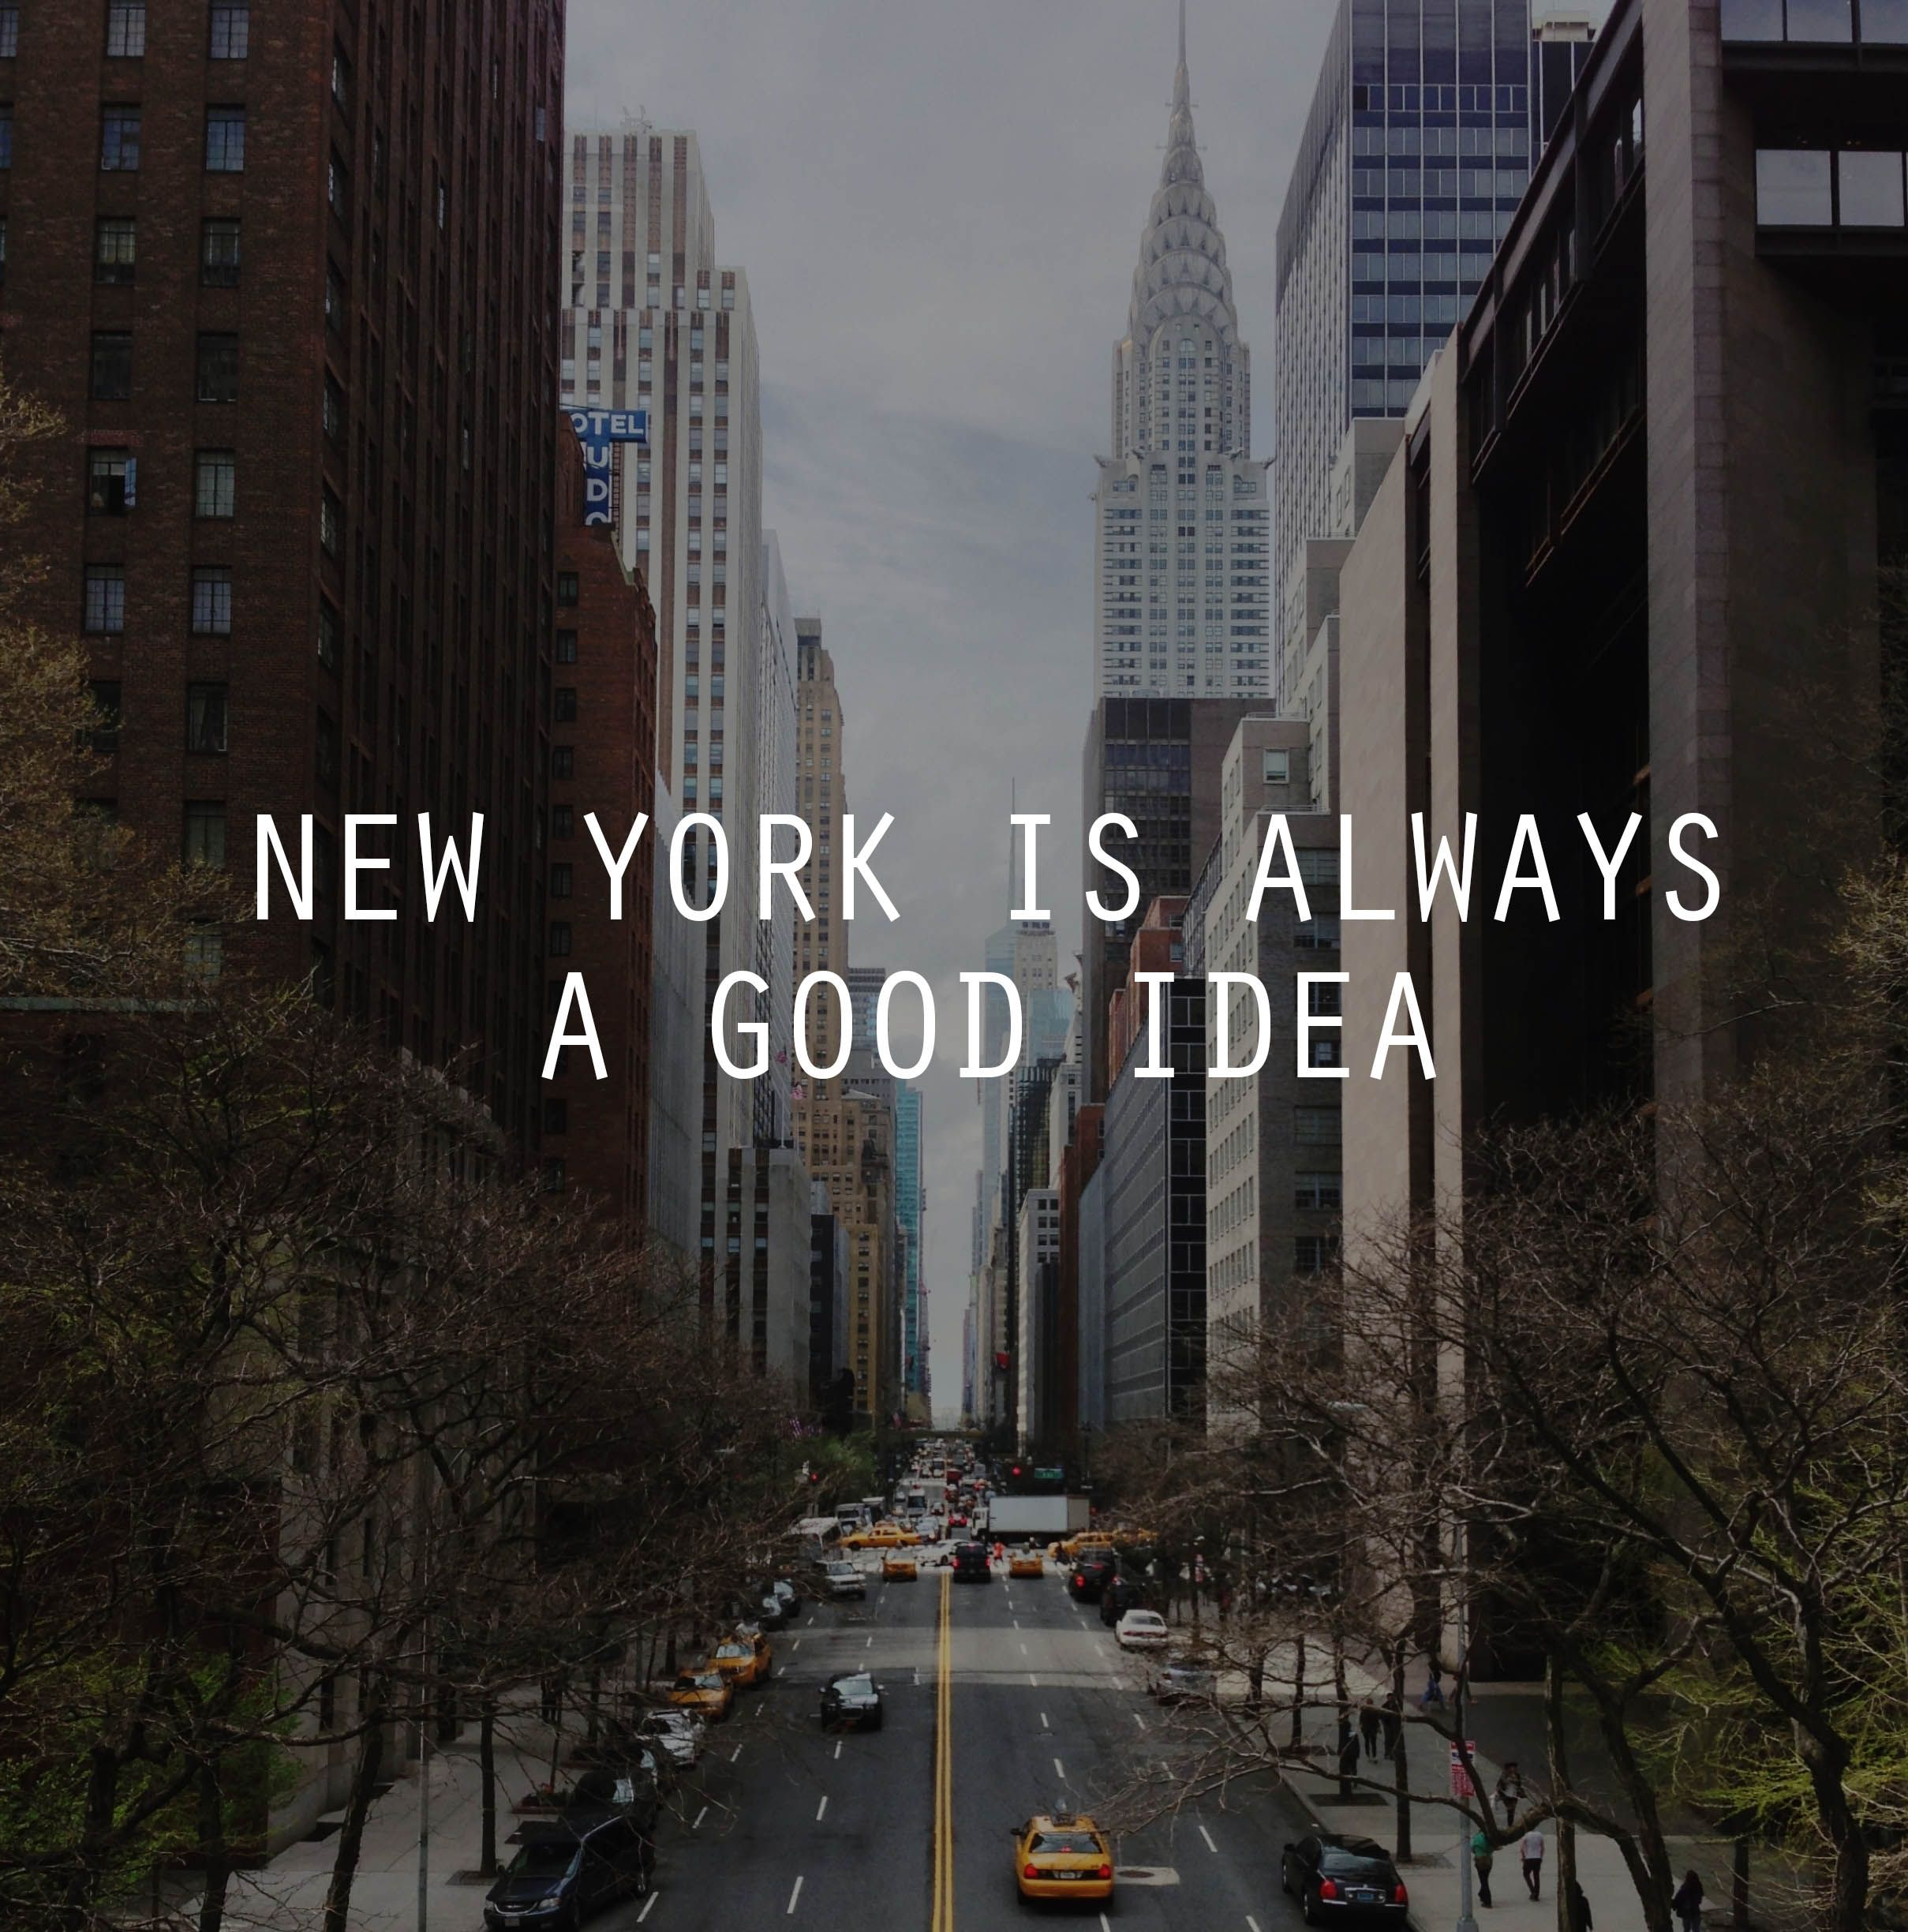 Quotes About New York City: New York Is Always A Good Idea #NYC #Quotes